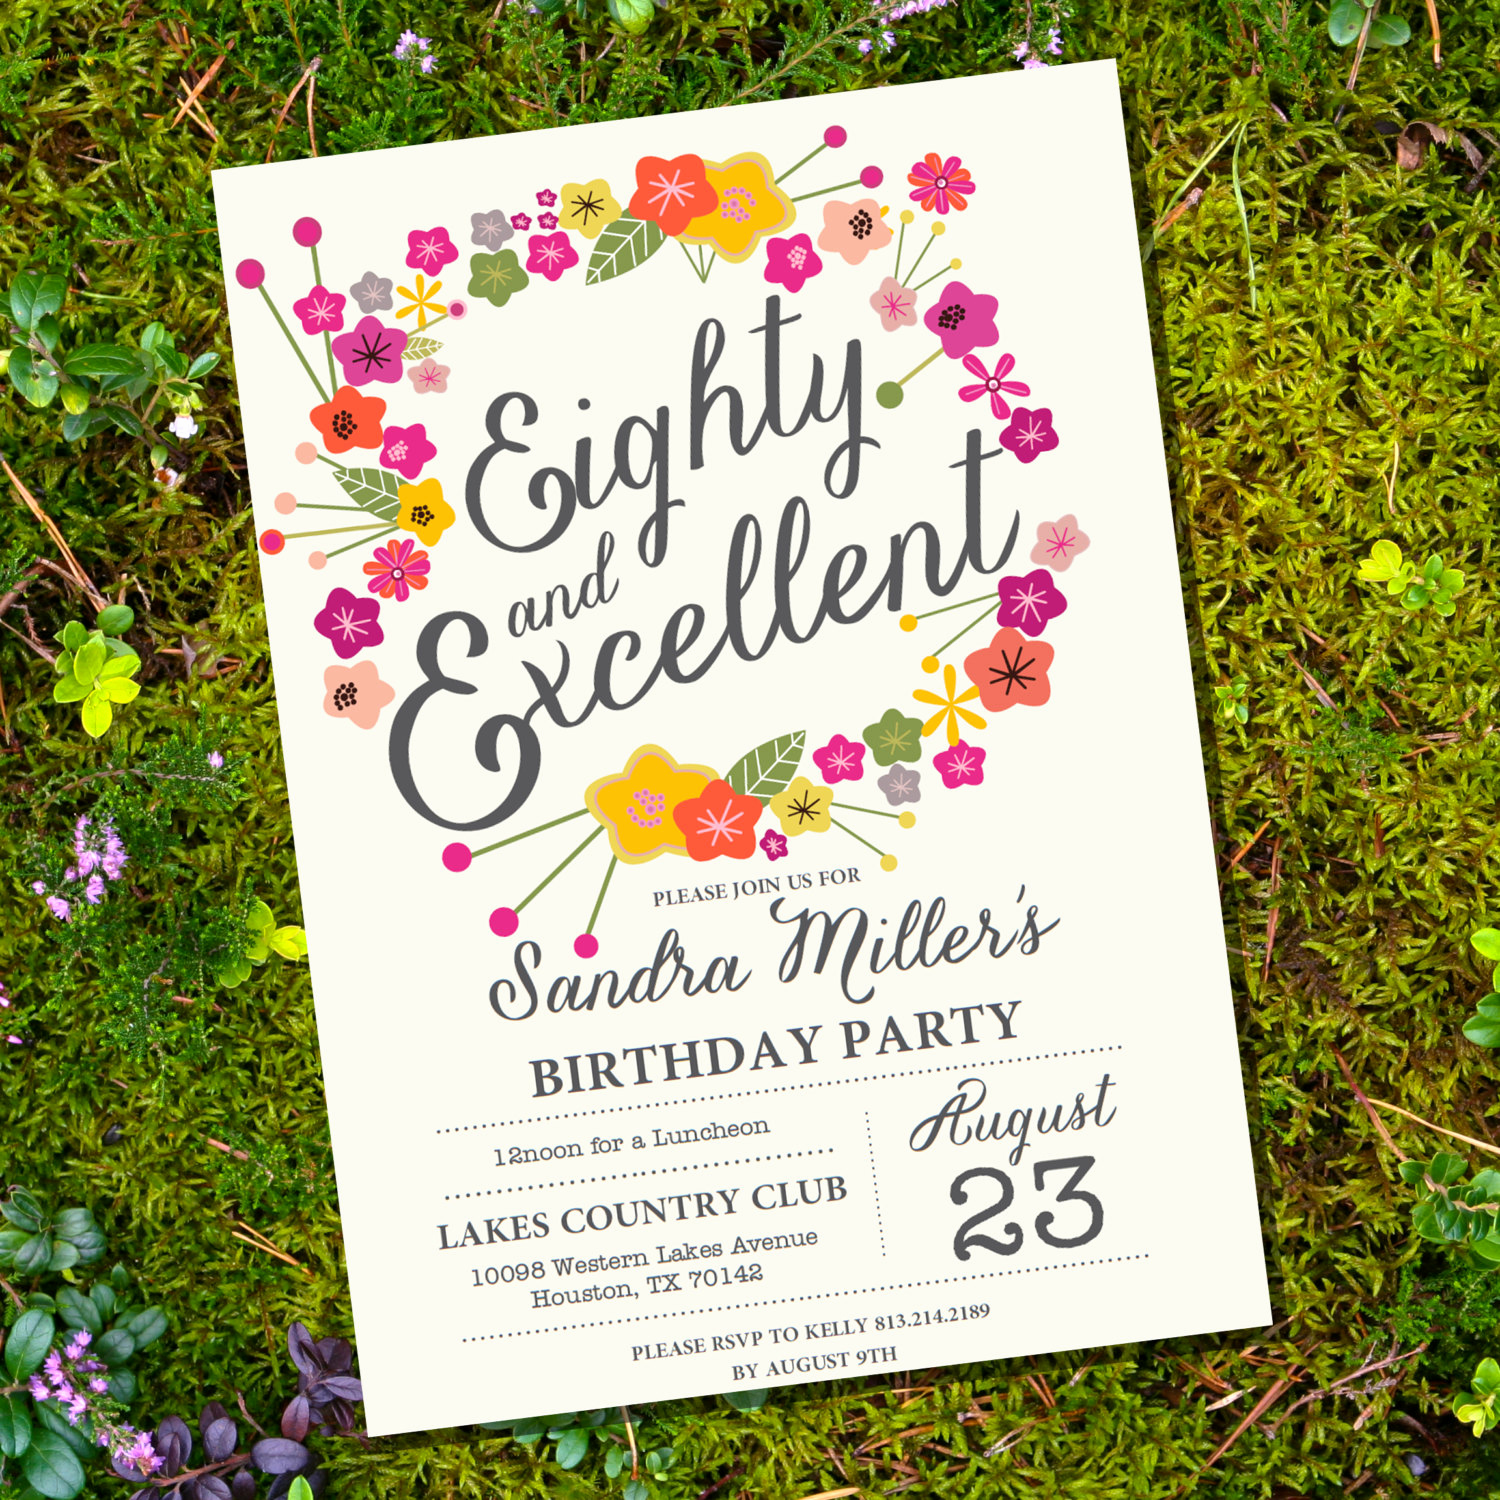 80th Birthday Party Invitations Beautiful Floral Eightieth Birthday Invitation 80th Birthday